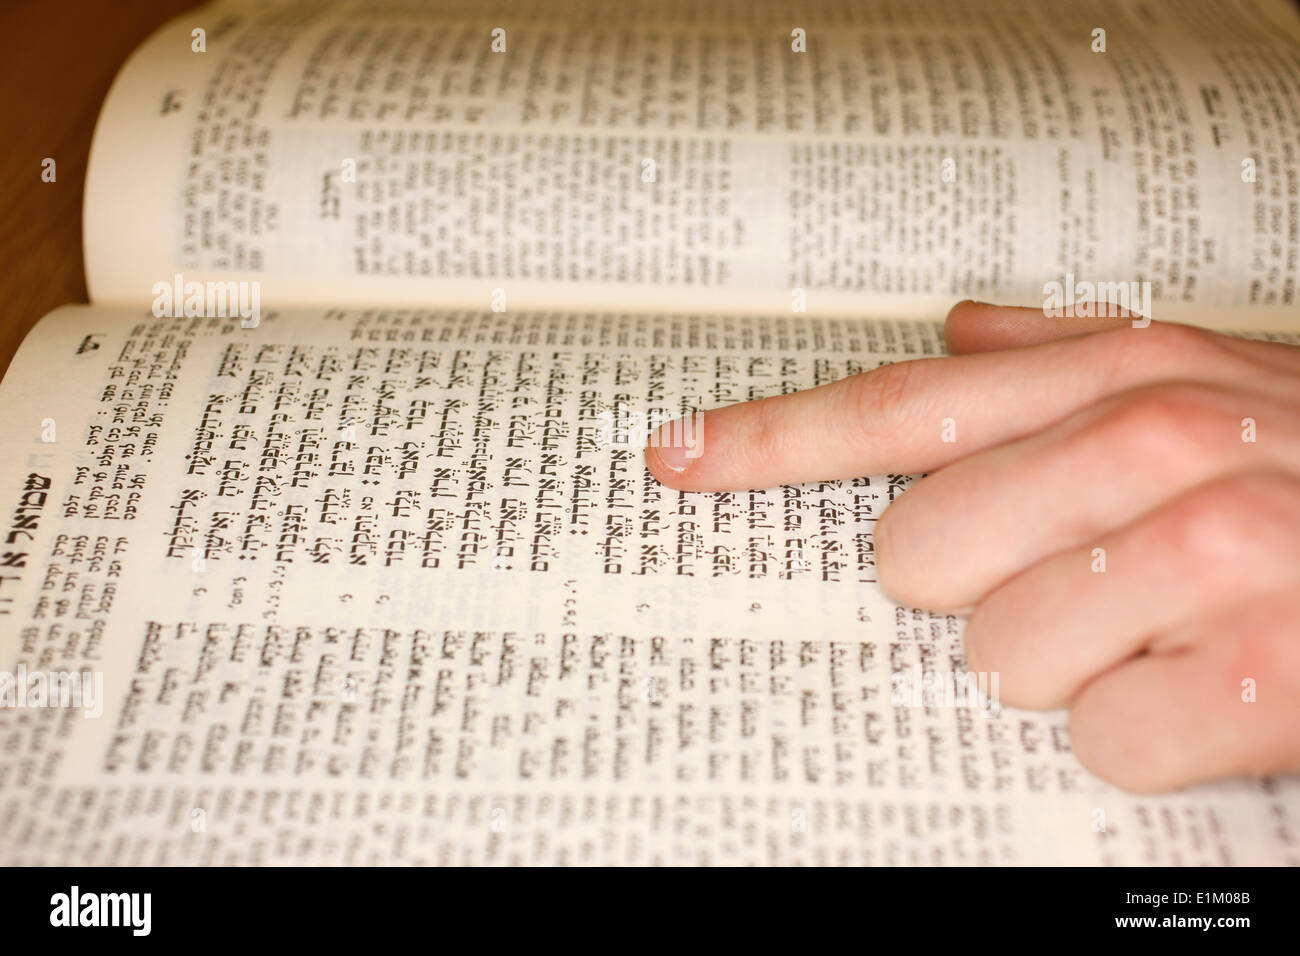 Talmud reading - Stock Image